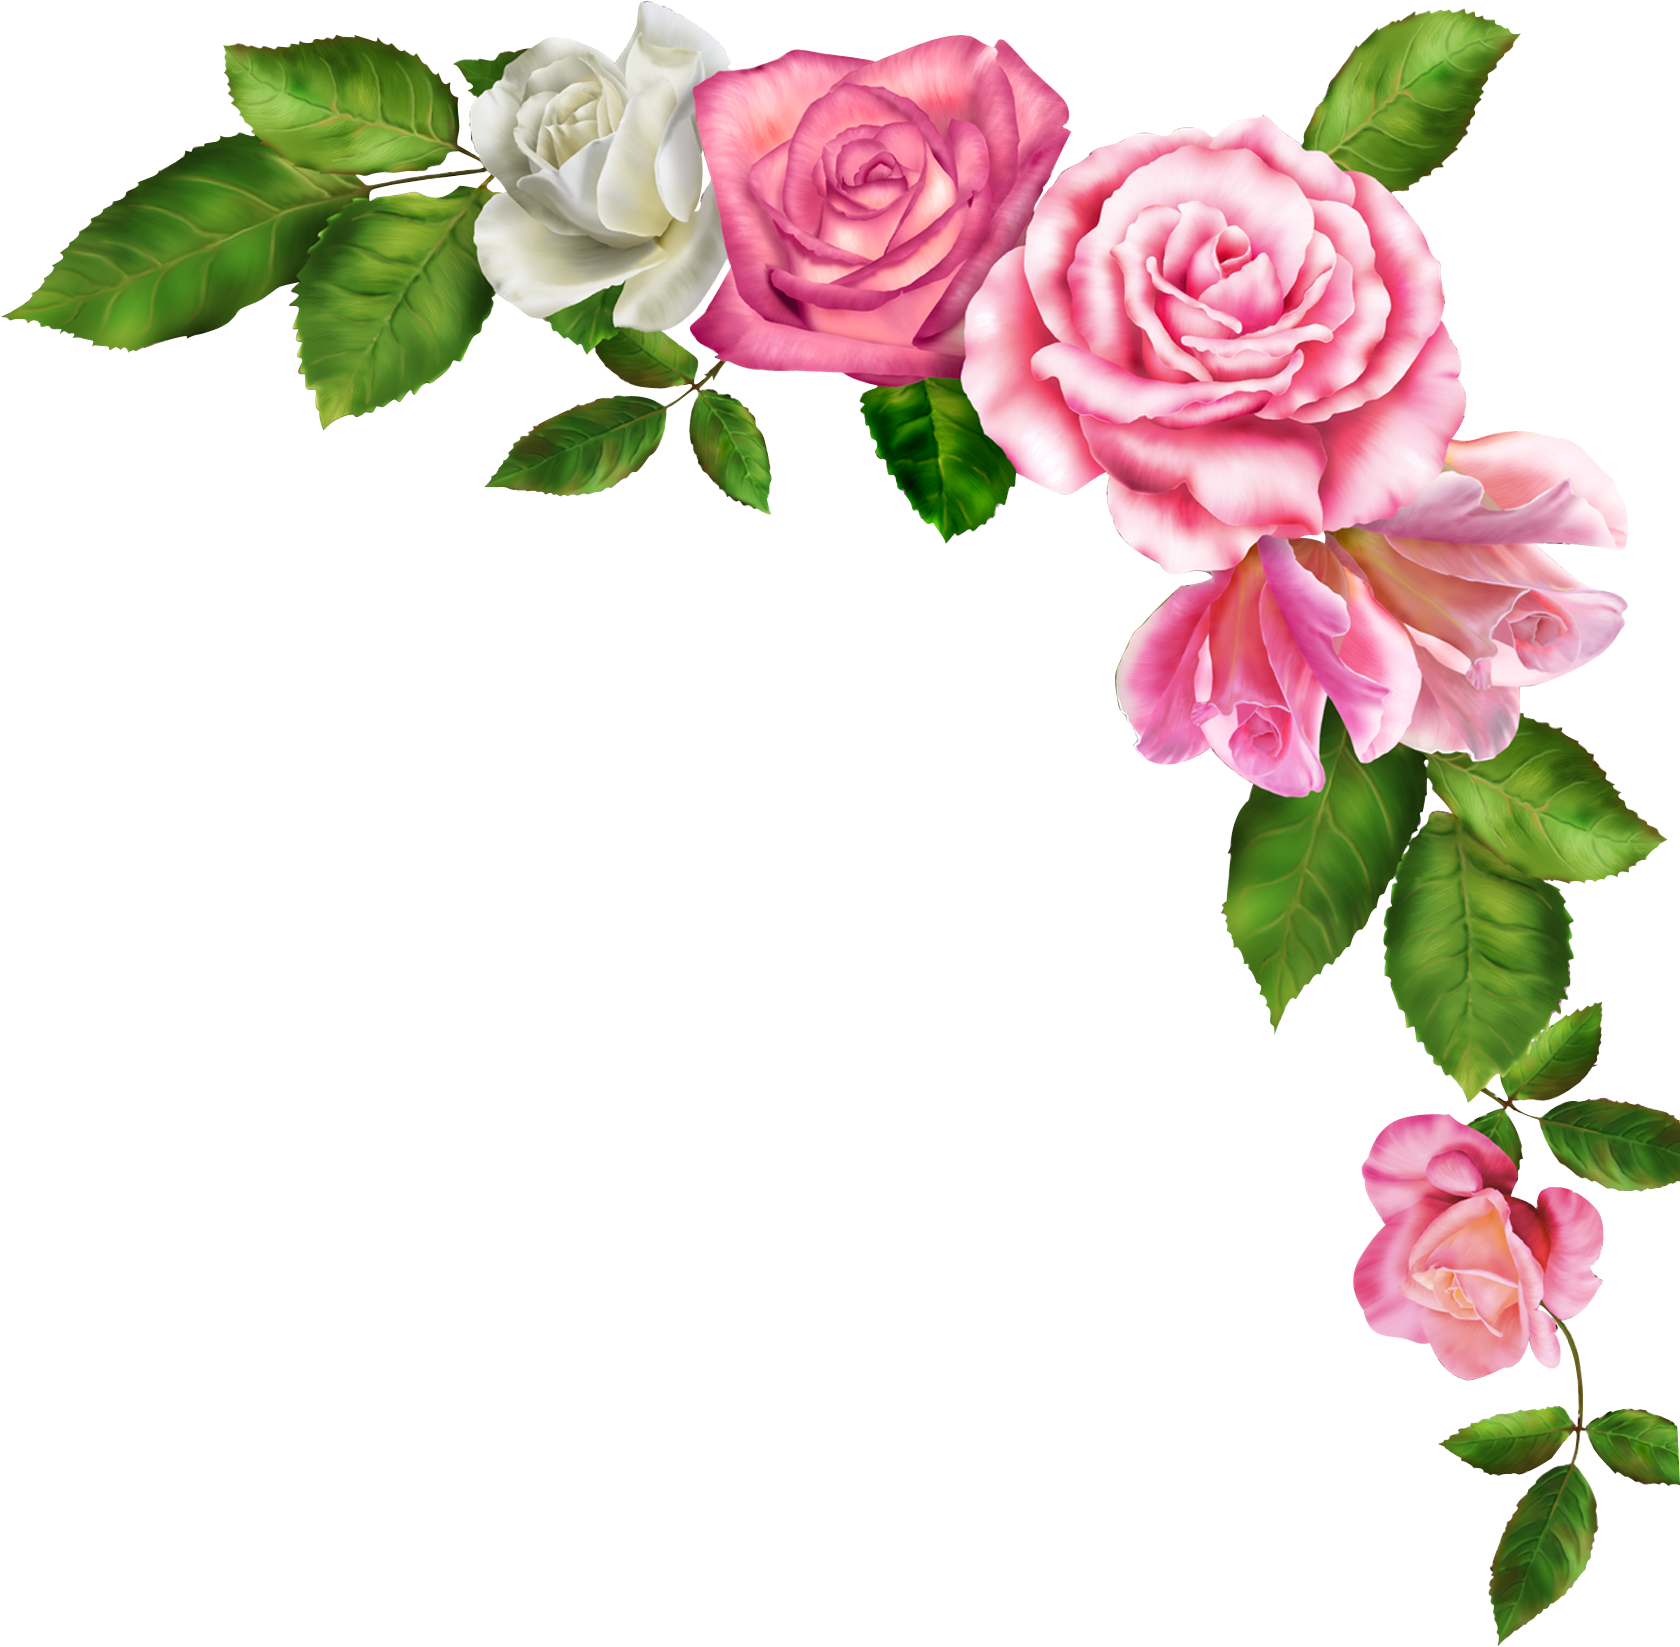 Pink flower border clipart image royalty free stock Borders and Frames Pink flowers Clip art - Watercolor flower 1680 ... image royalty free stock